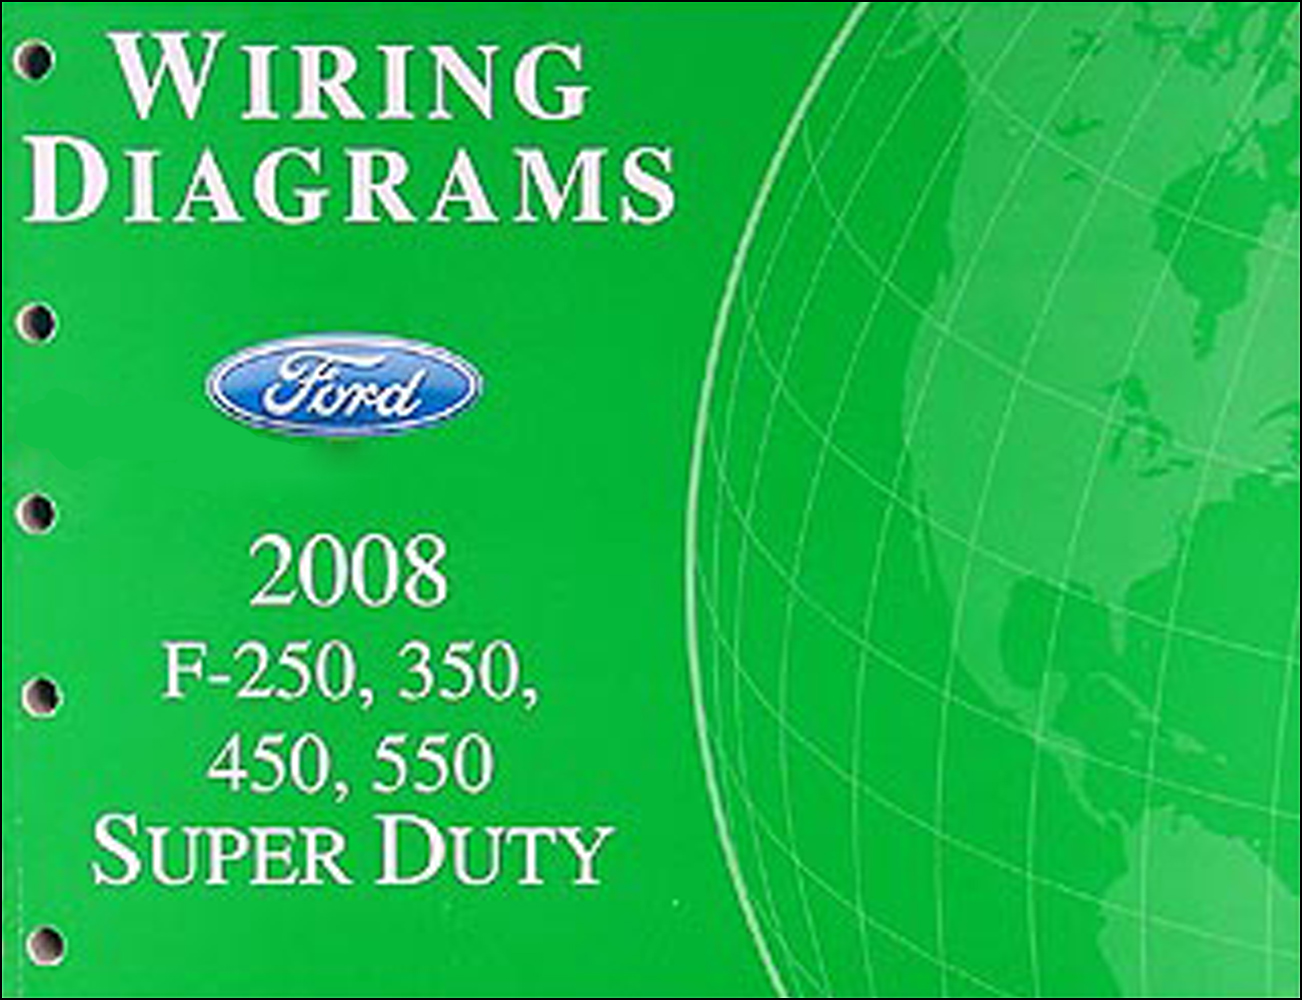 hight resolution of 2008 ford f 250 thru 550 super duty wiring diagram manual original 2008 ford f250 trailer wiring diagram 2008 ford f250 wiring diagram